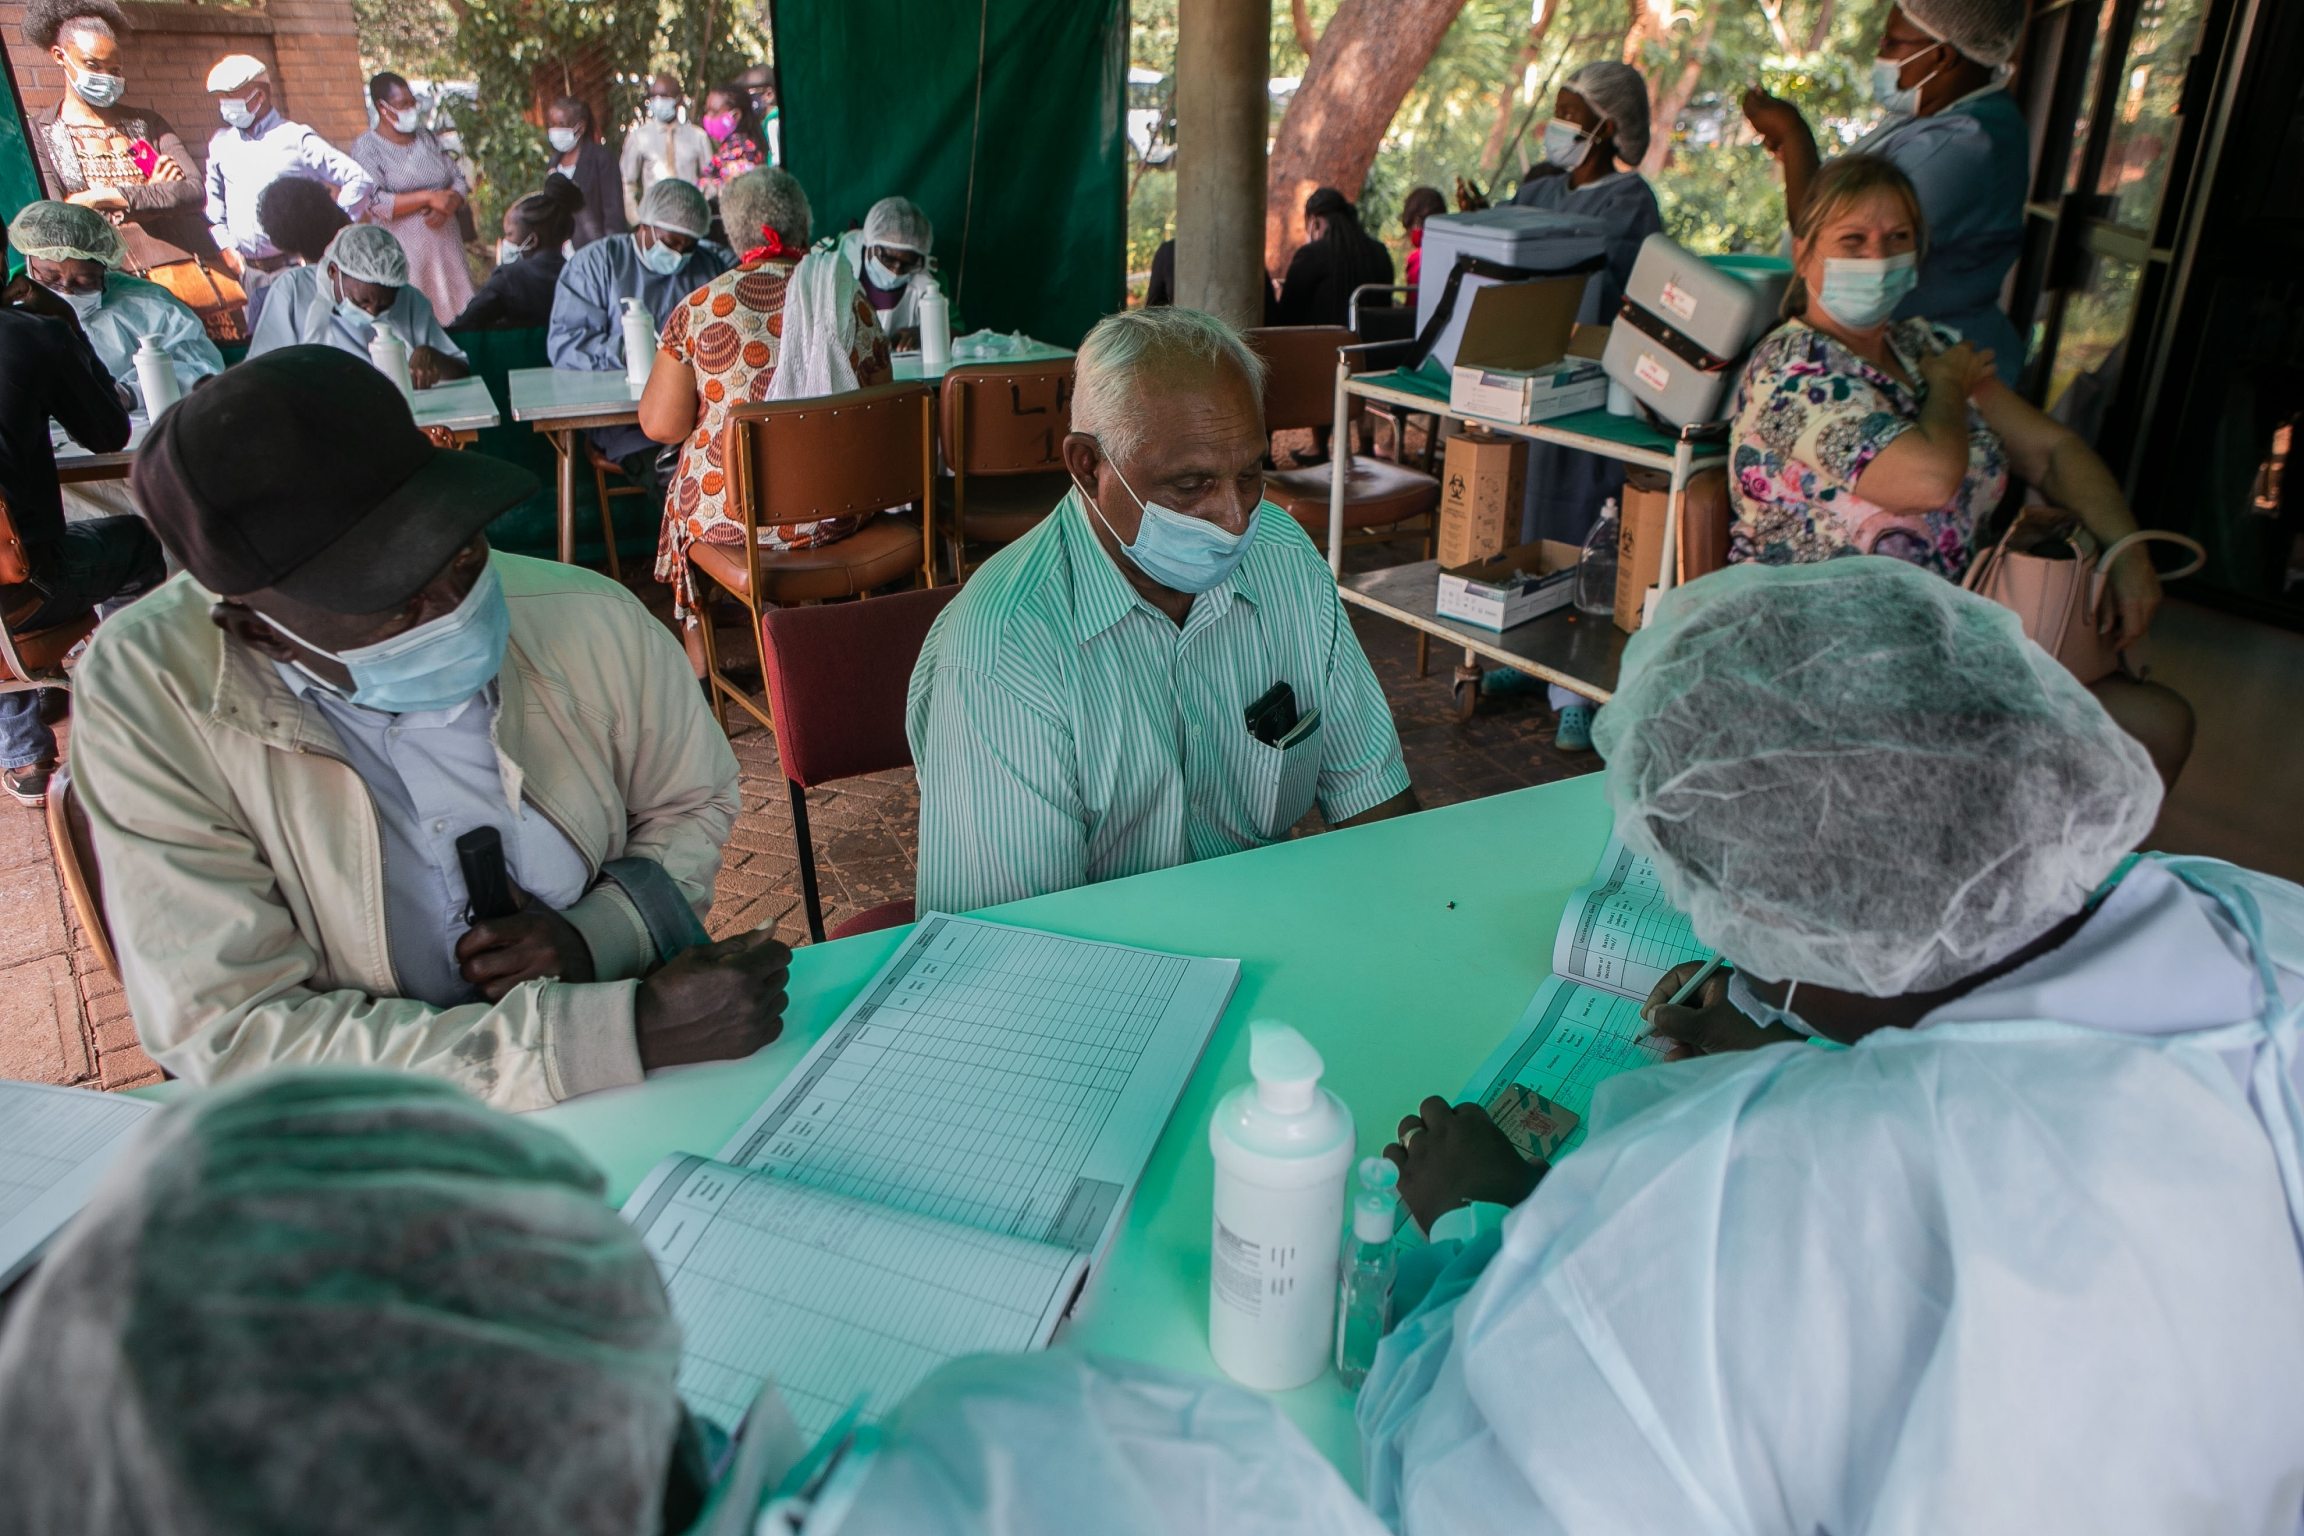 Citizens receive vaccinations with PPE-wearing health workers